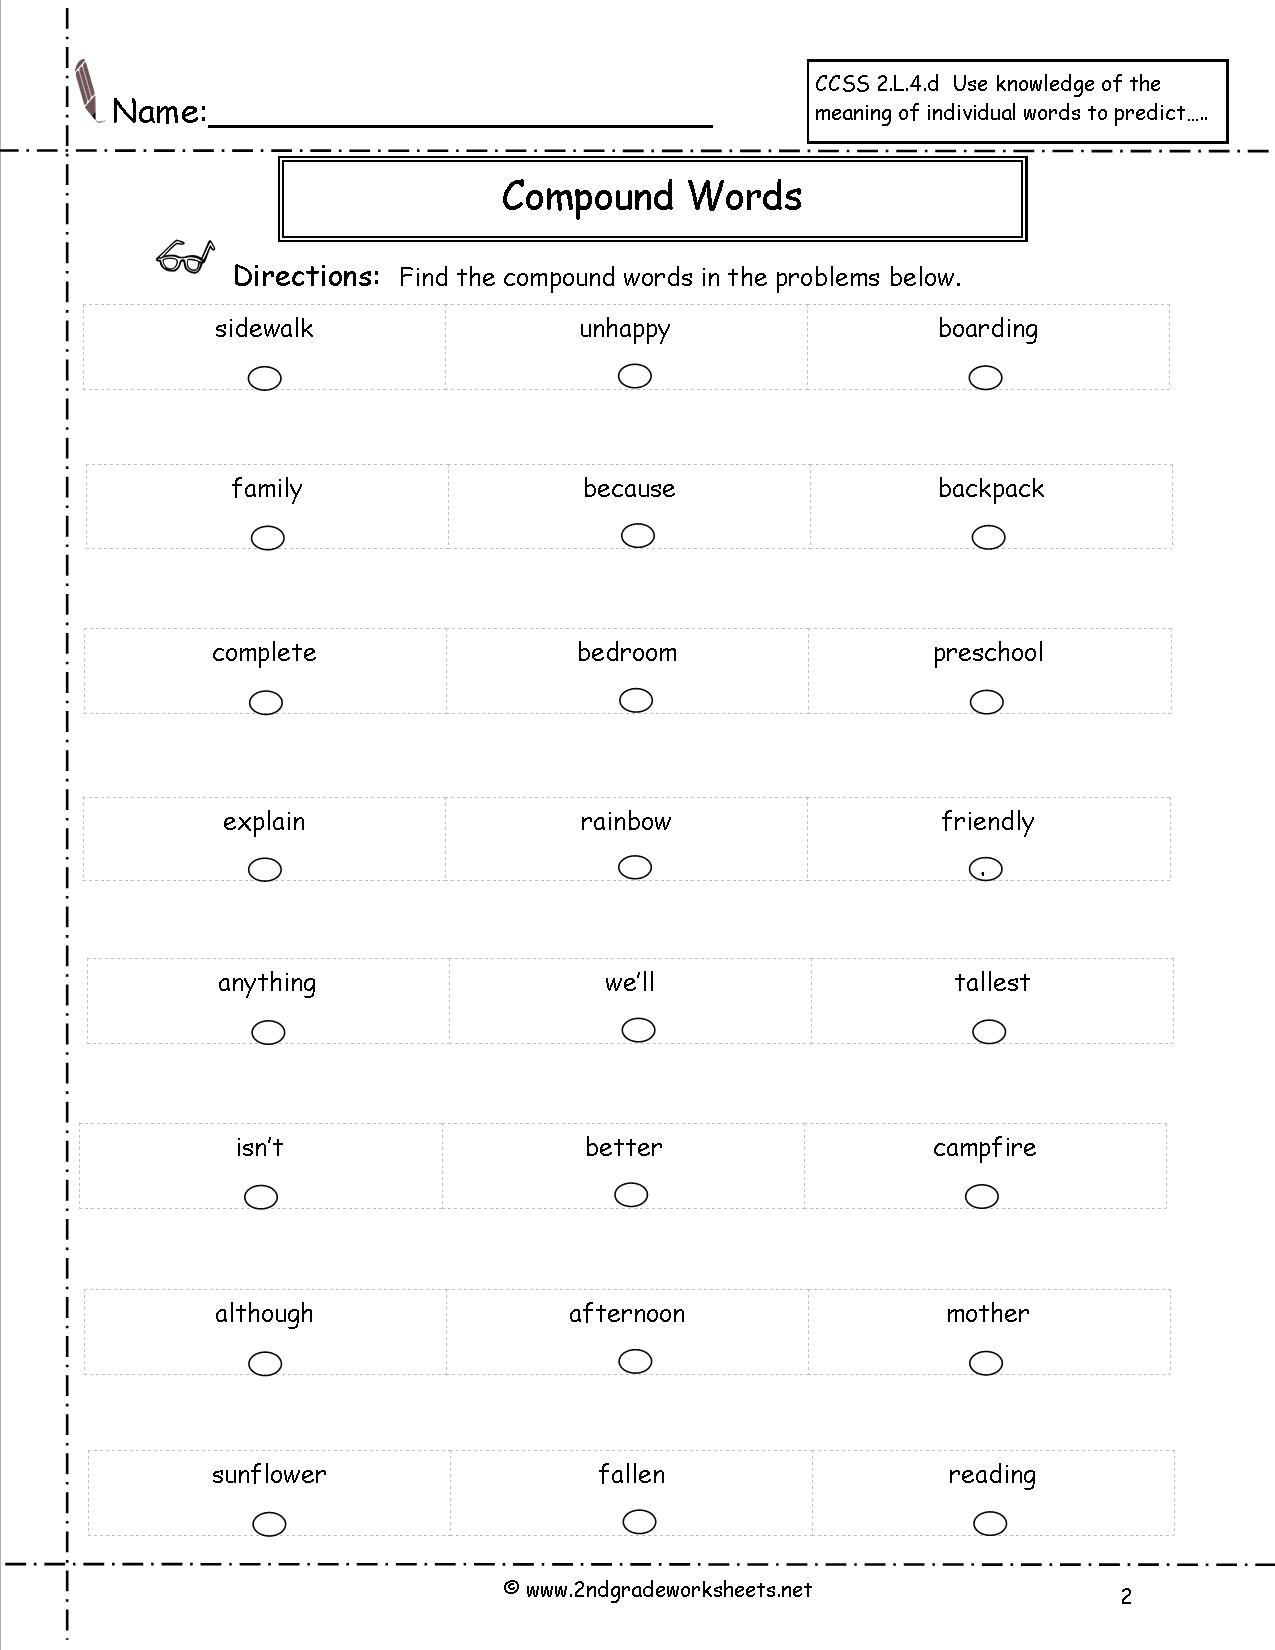 Compound Words Worksheets | Free Printable Compound Word Worksheets